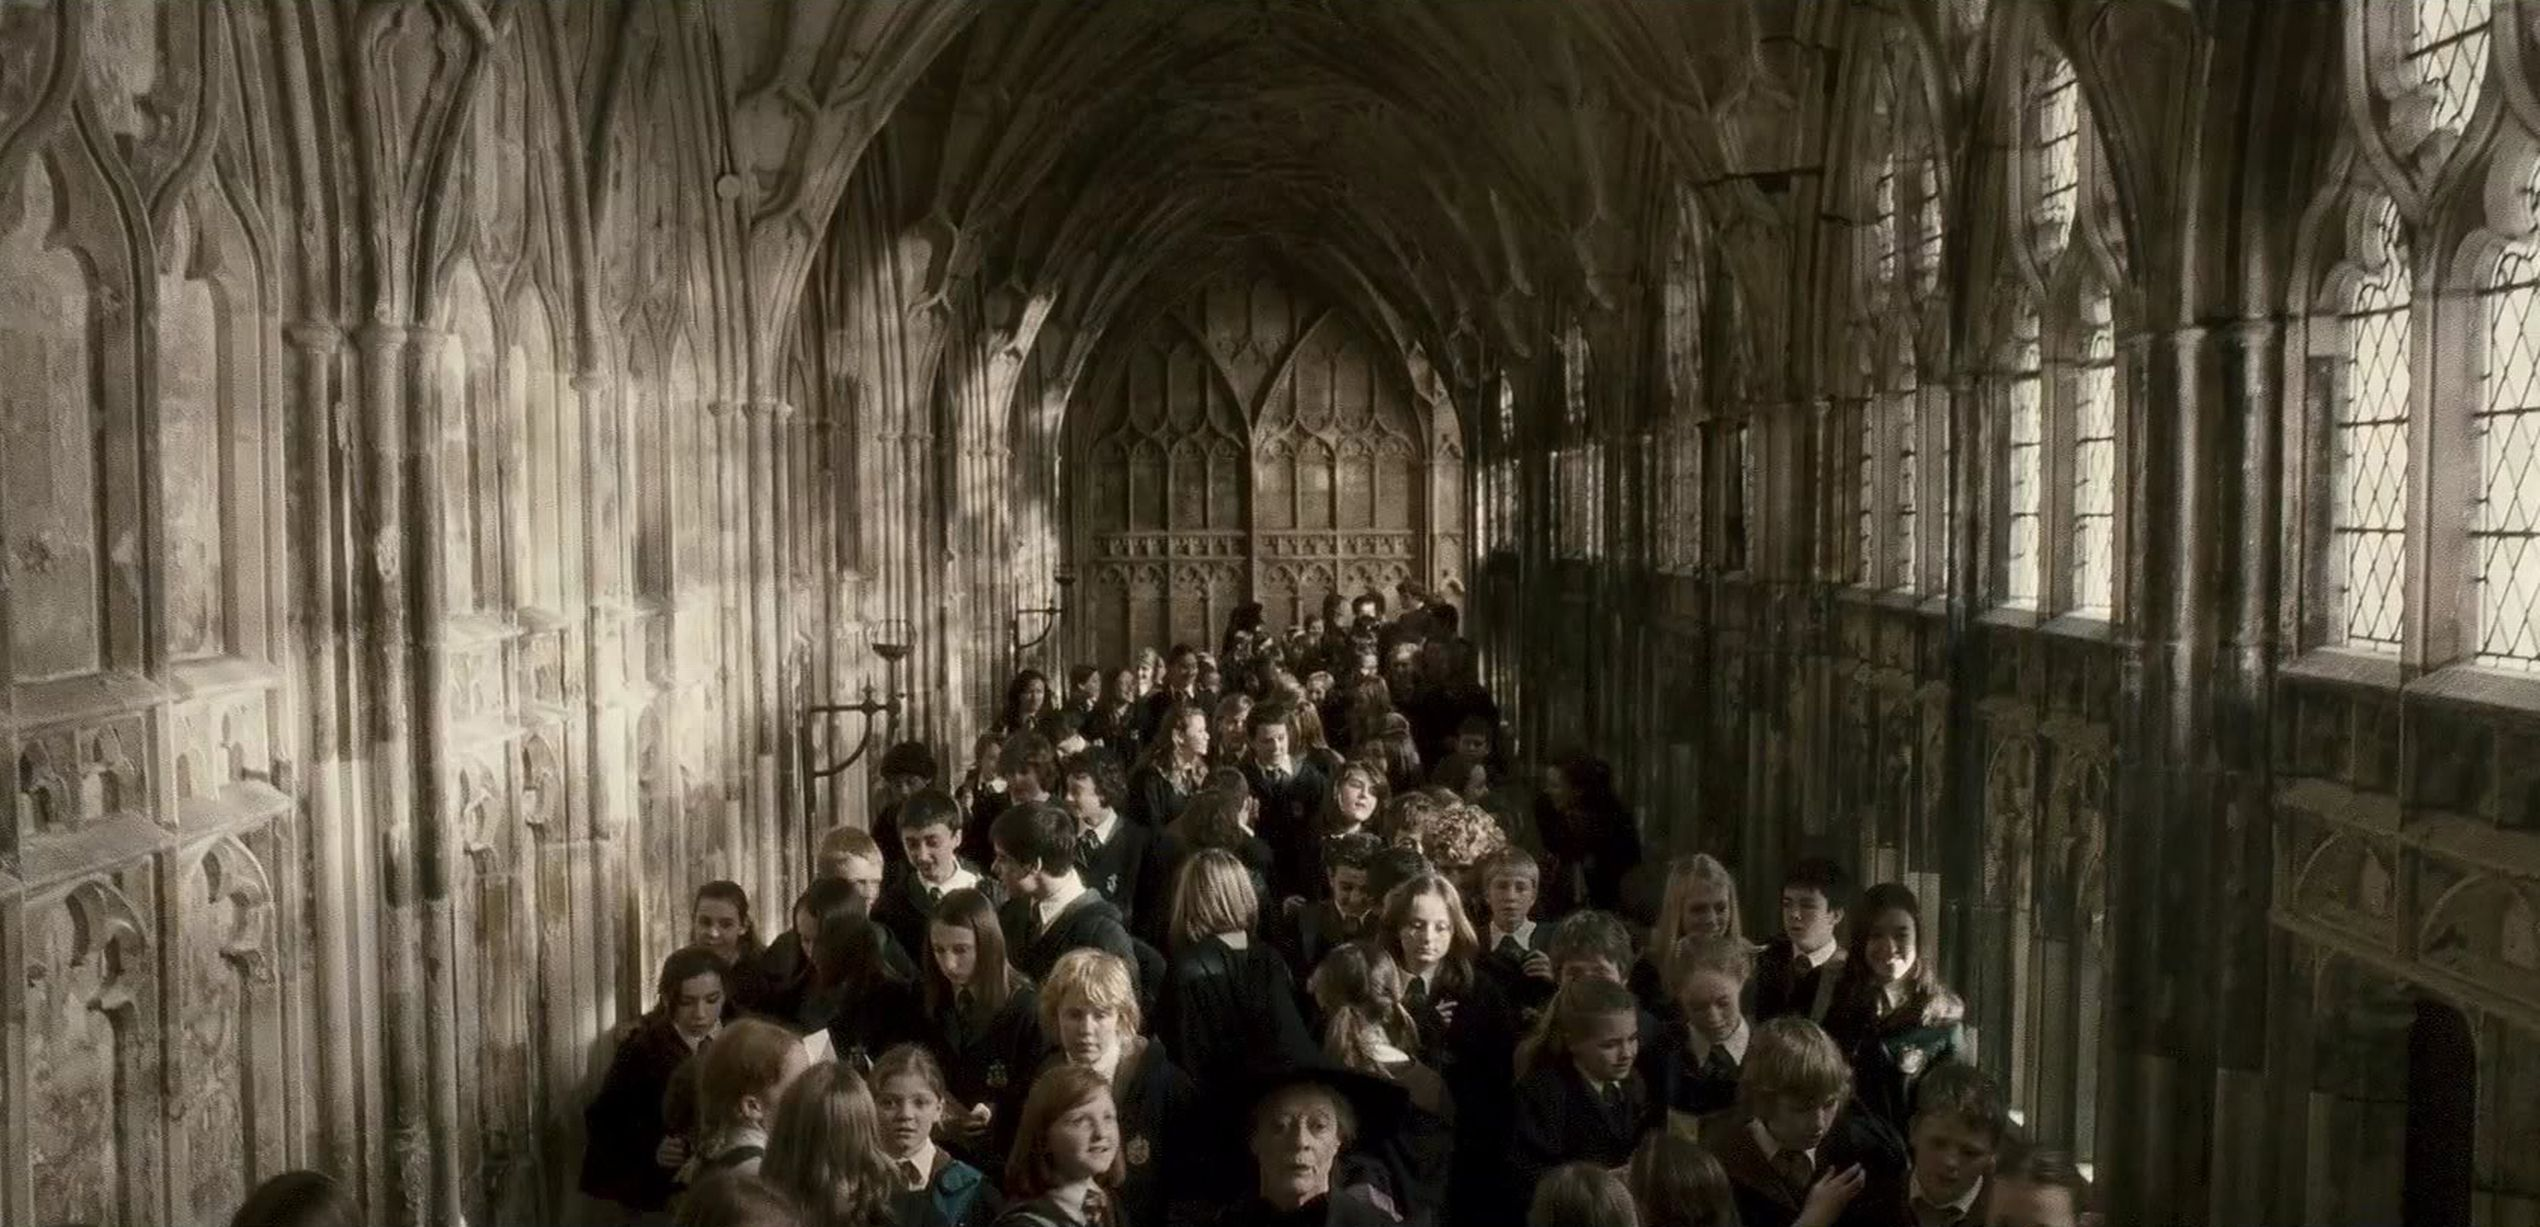 Gloucester Cathedral in Harry Potter. Image credit: Gloucestershire Live